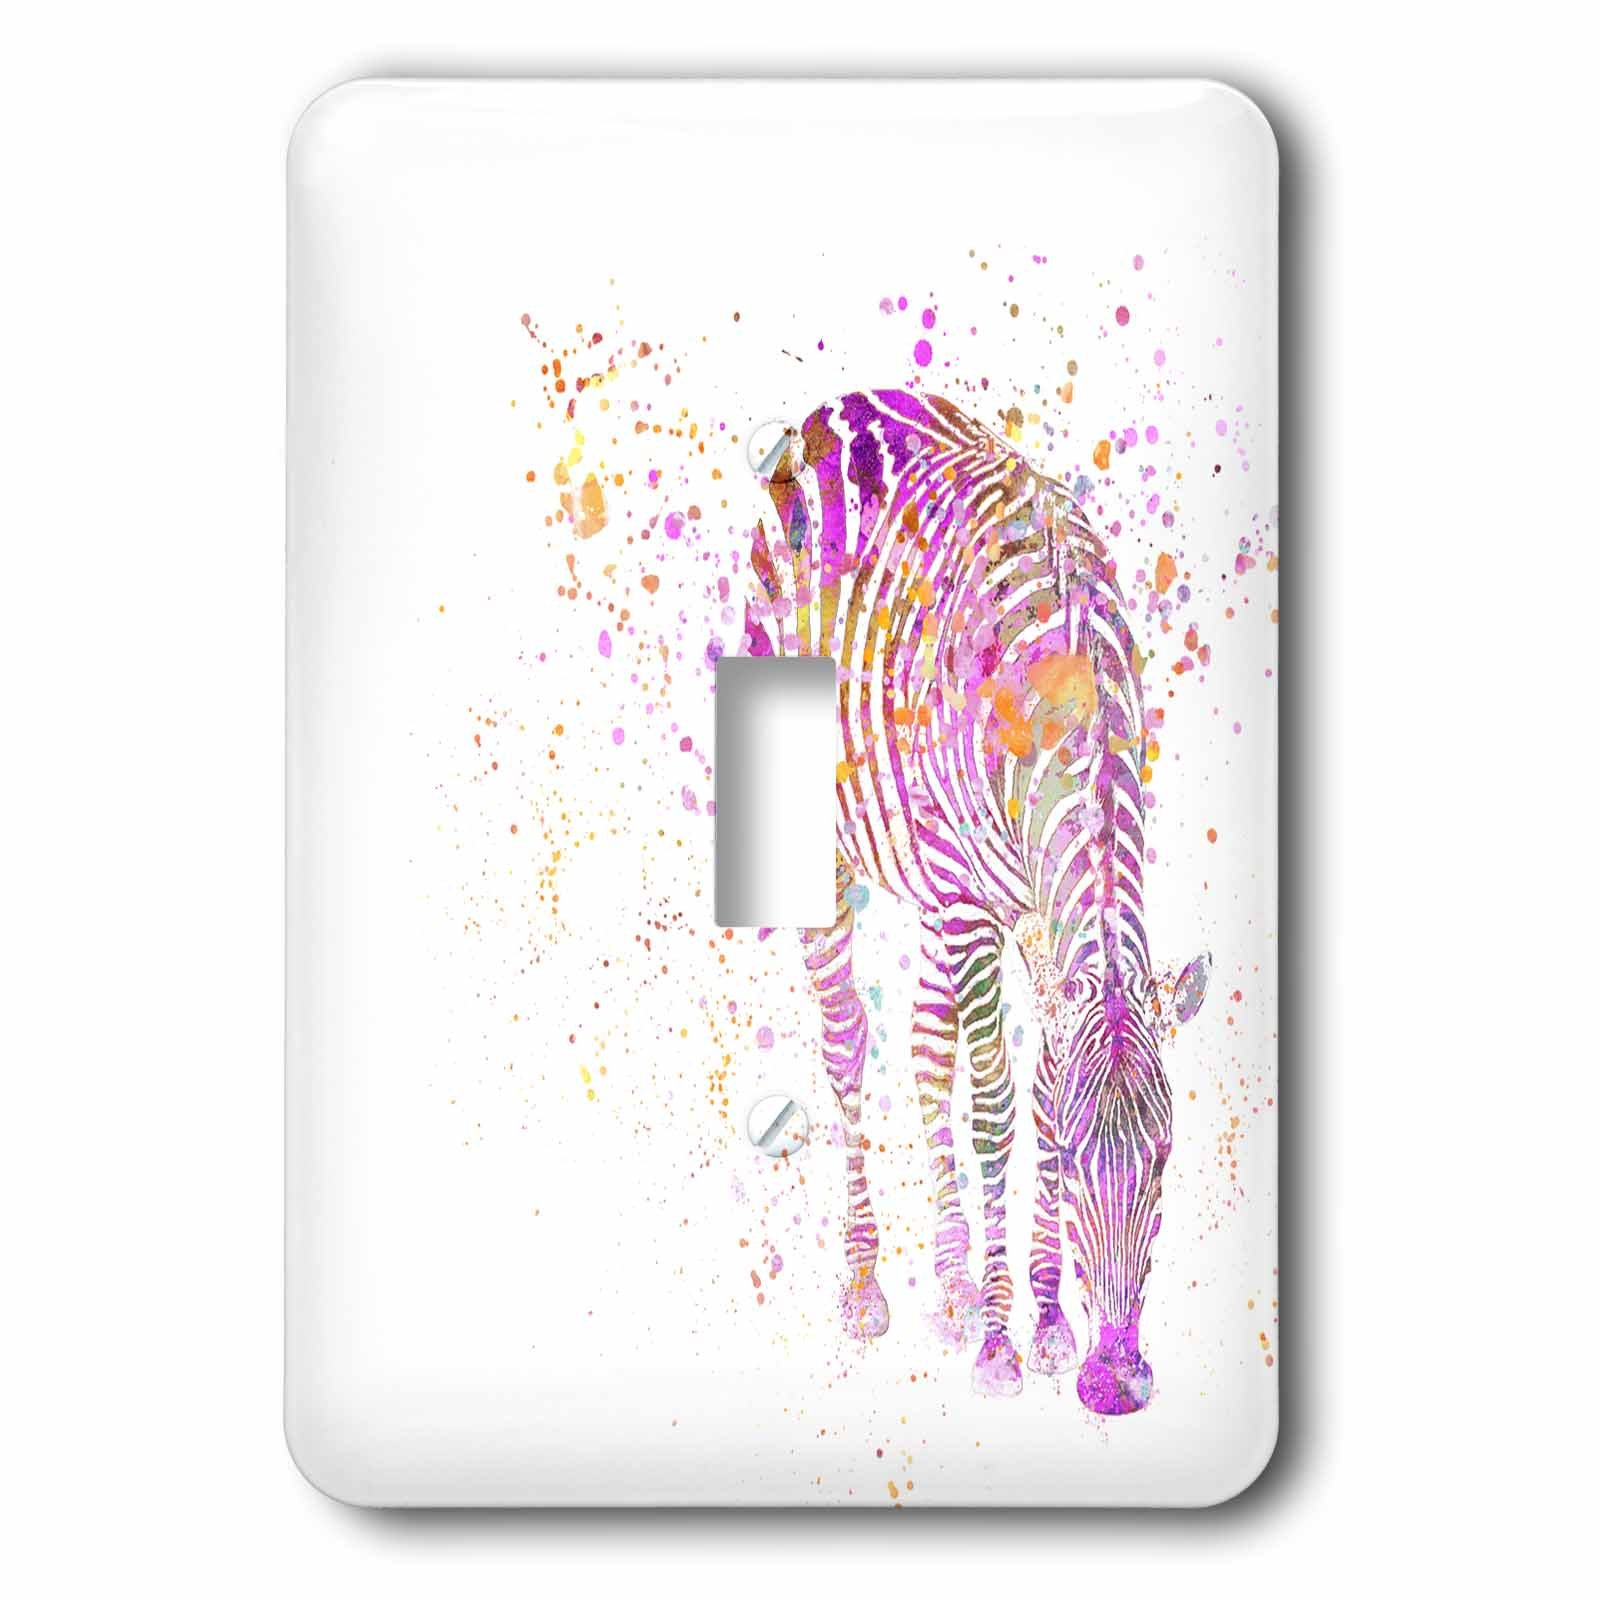 3dRose Andrea Haase Animals Illustration - Artsy zebra illustration - Light Switch Covers - single toggle switch (lsp_264756_1)